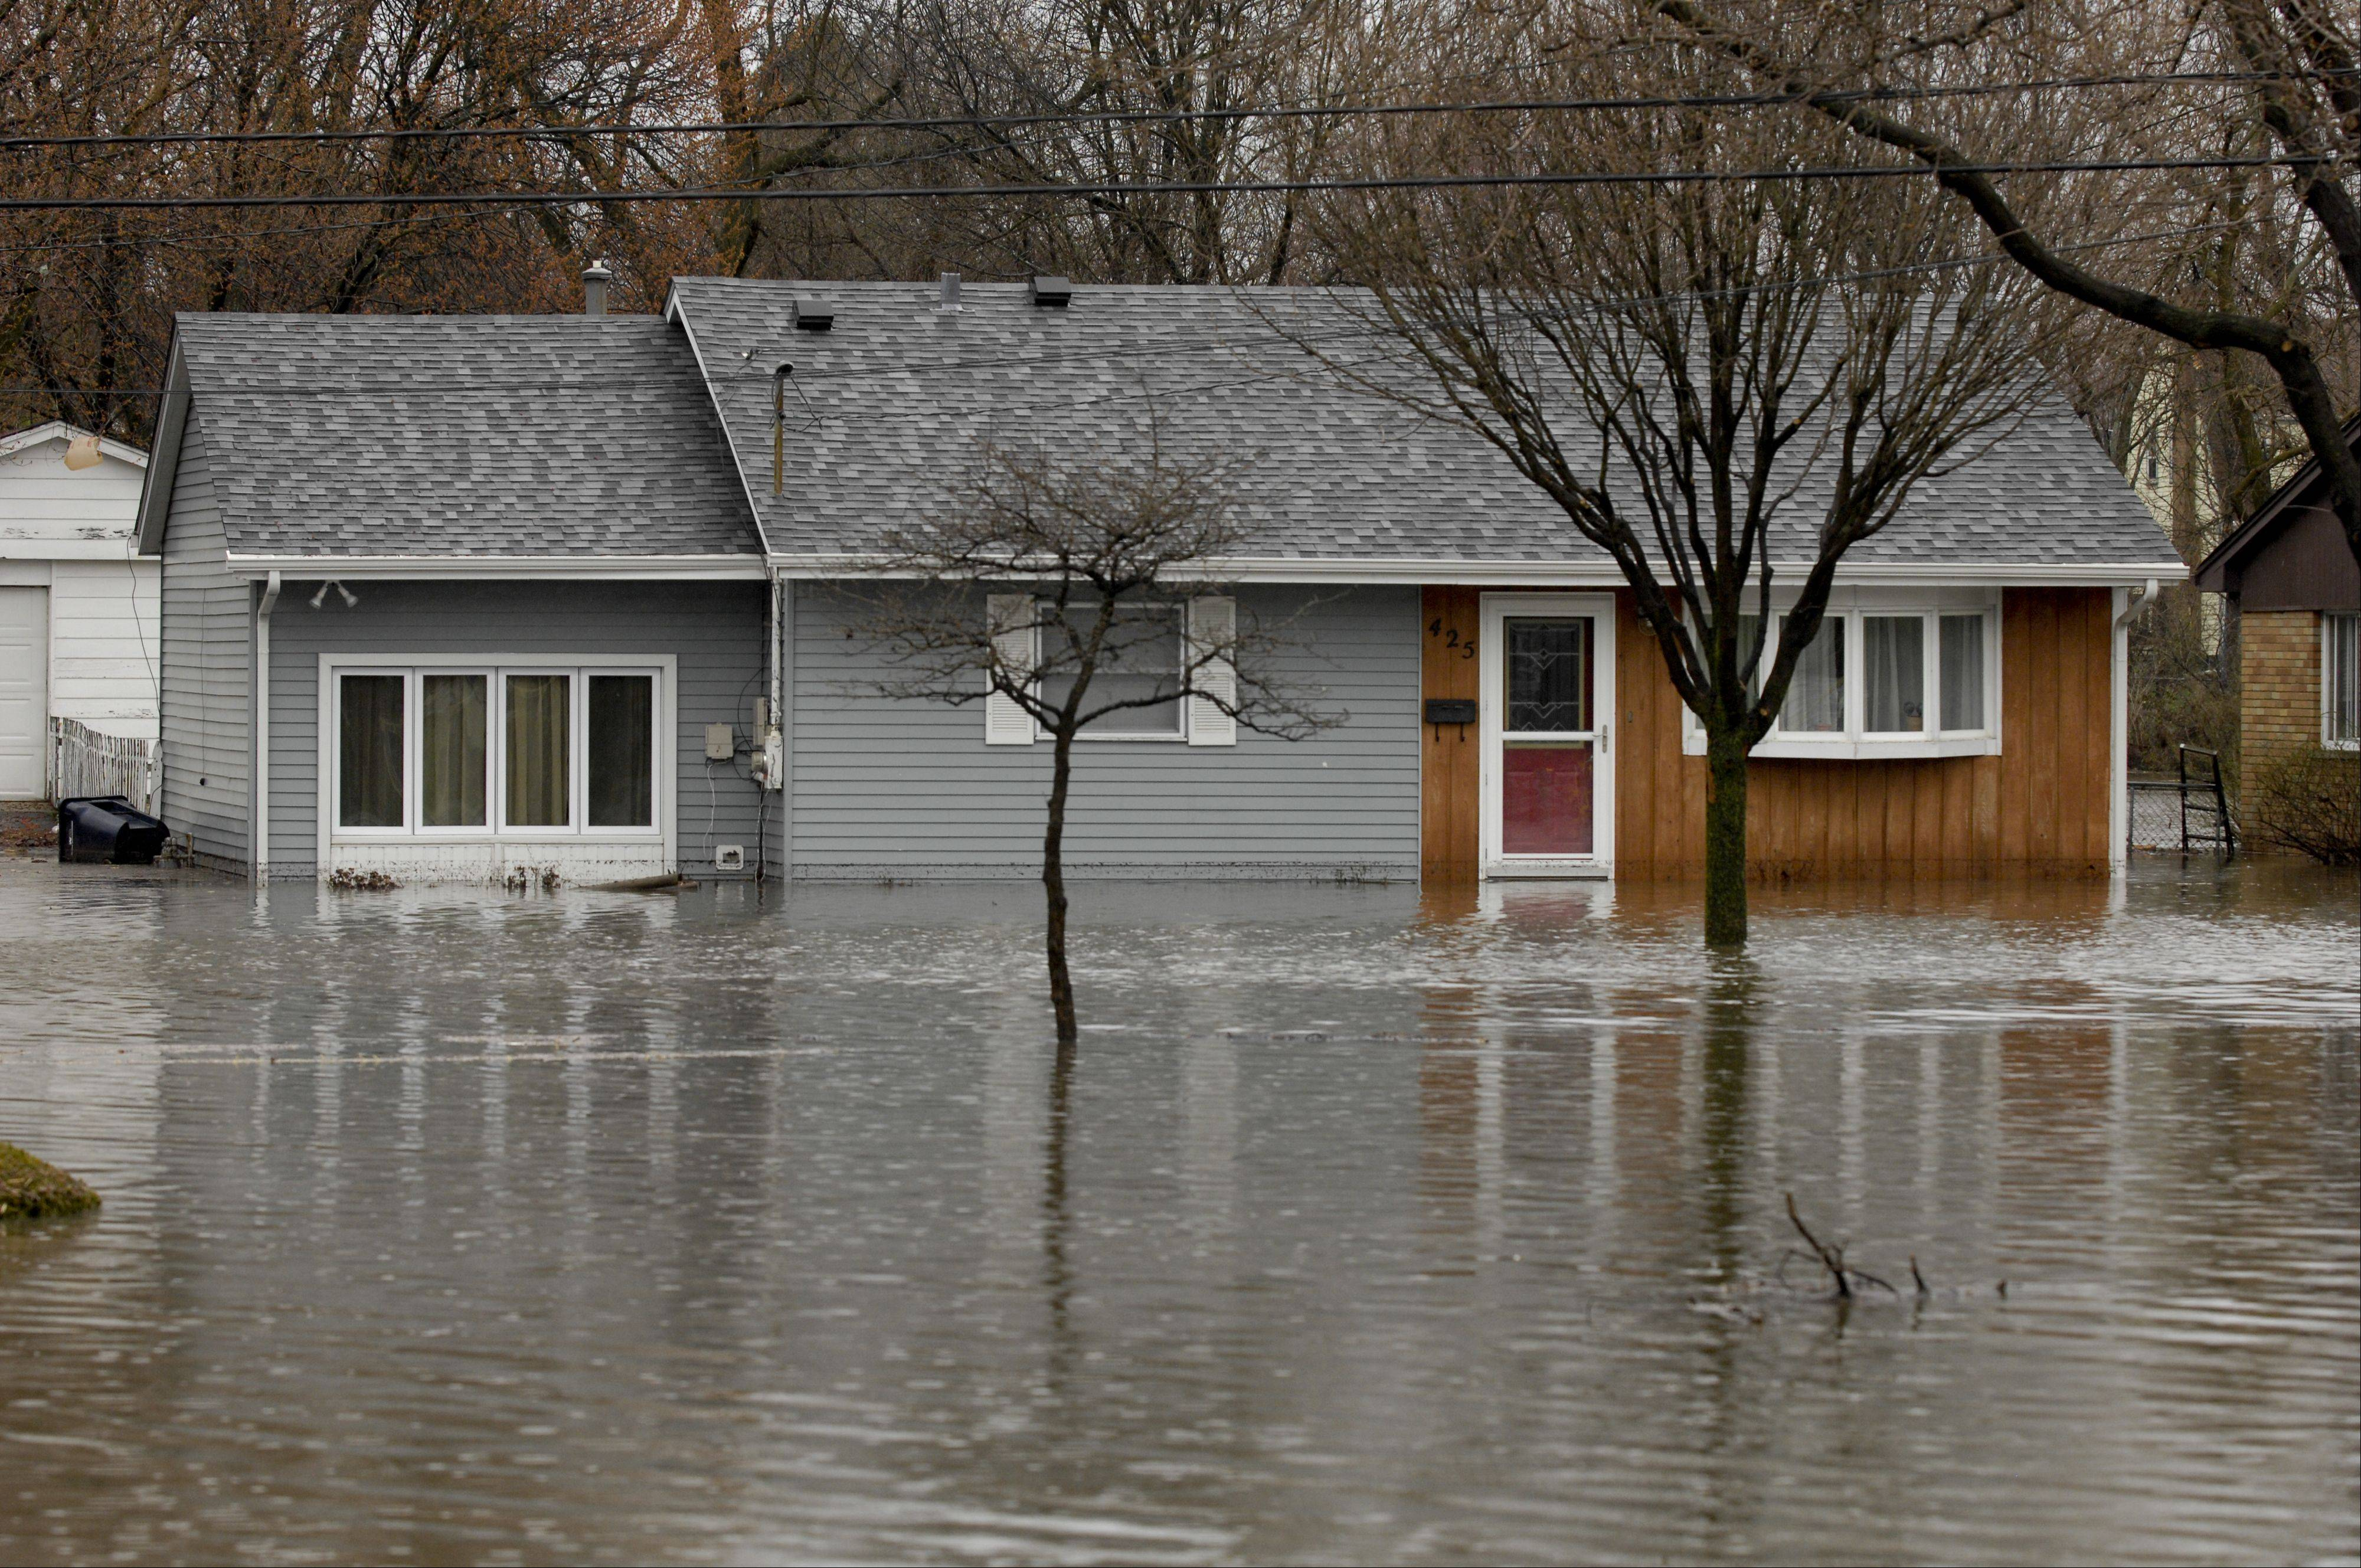 Mark Black/mblack@dailyherald.com The flooded home of Kurt and Debra Langworthy along Finley Road in Lombard Thursday.